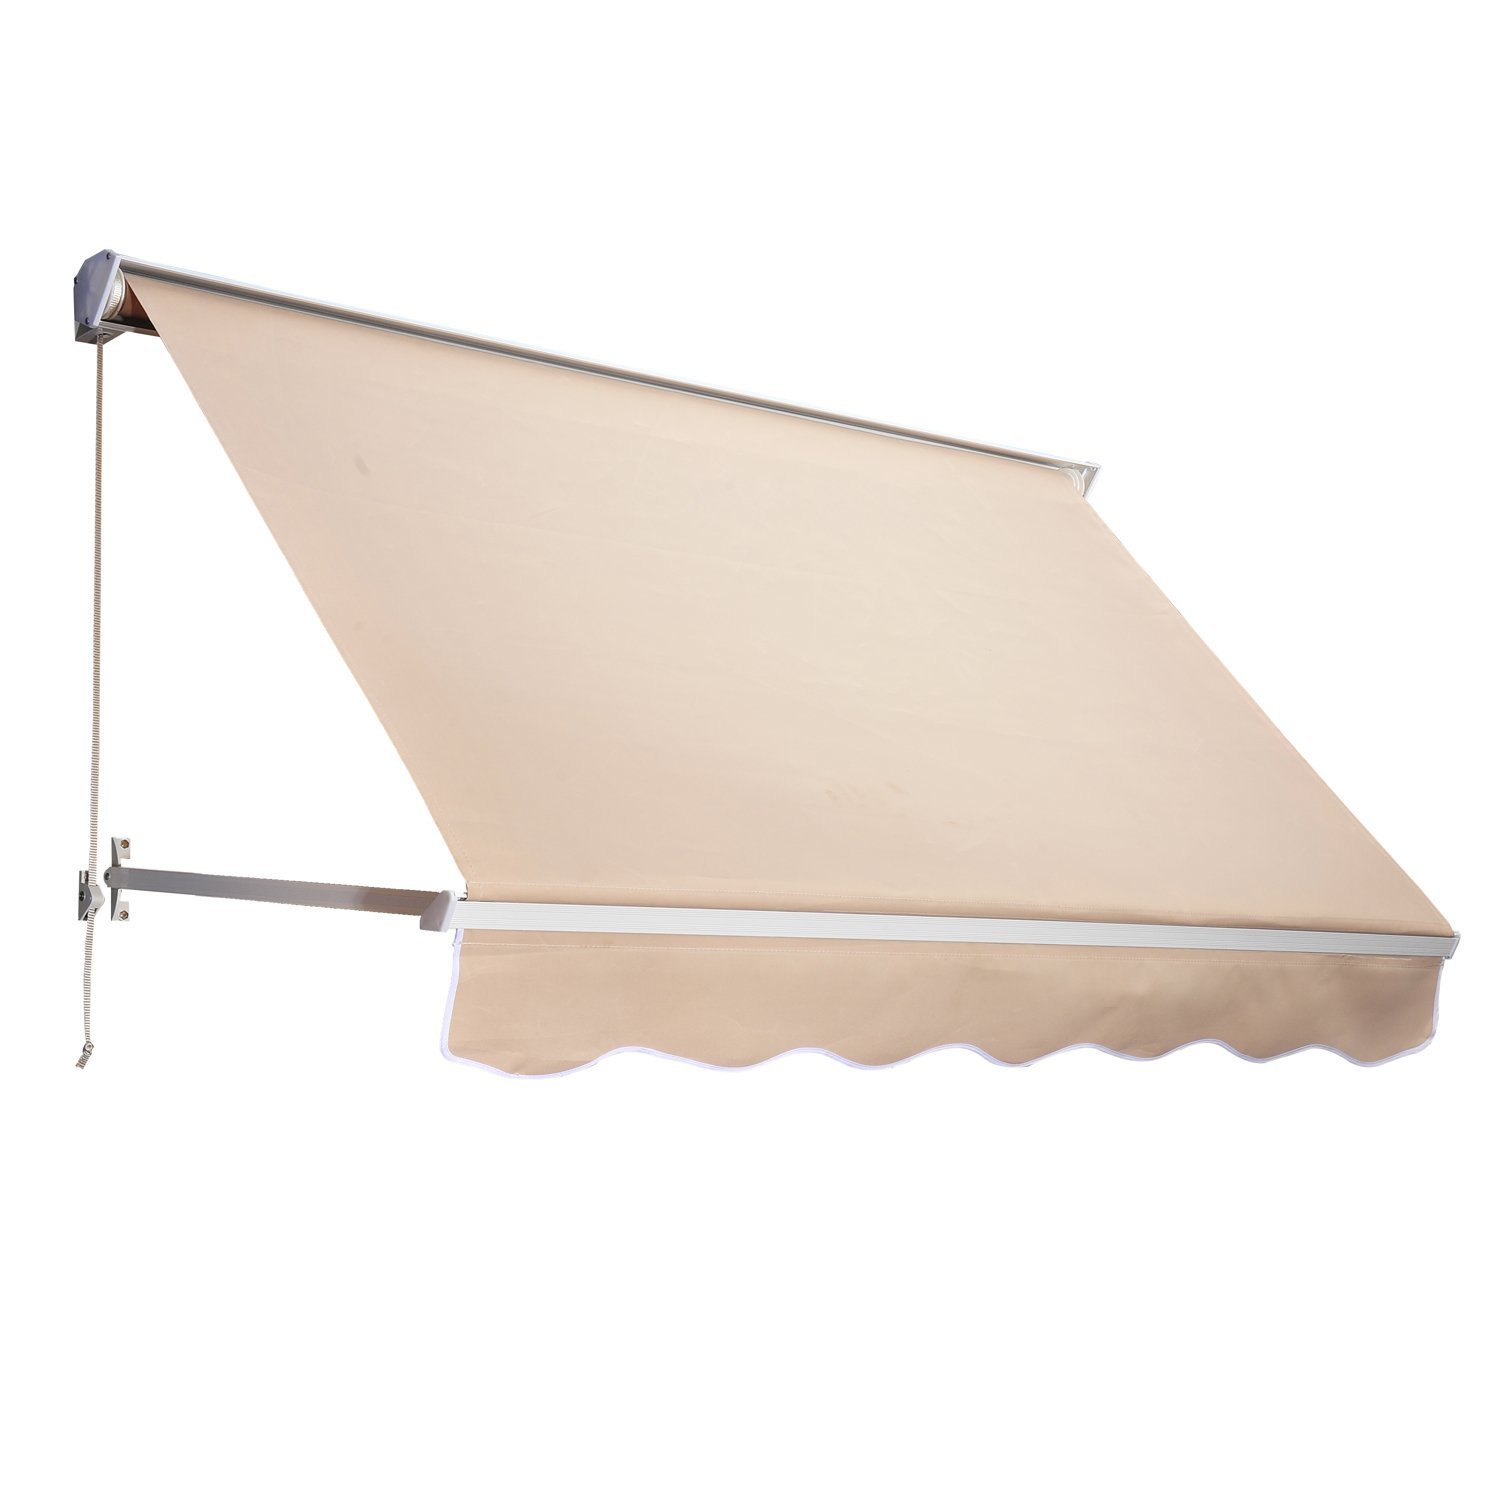 Outsunny 6ft Drop Arm Manual Retractable Window Awning Patio ...